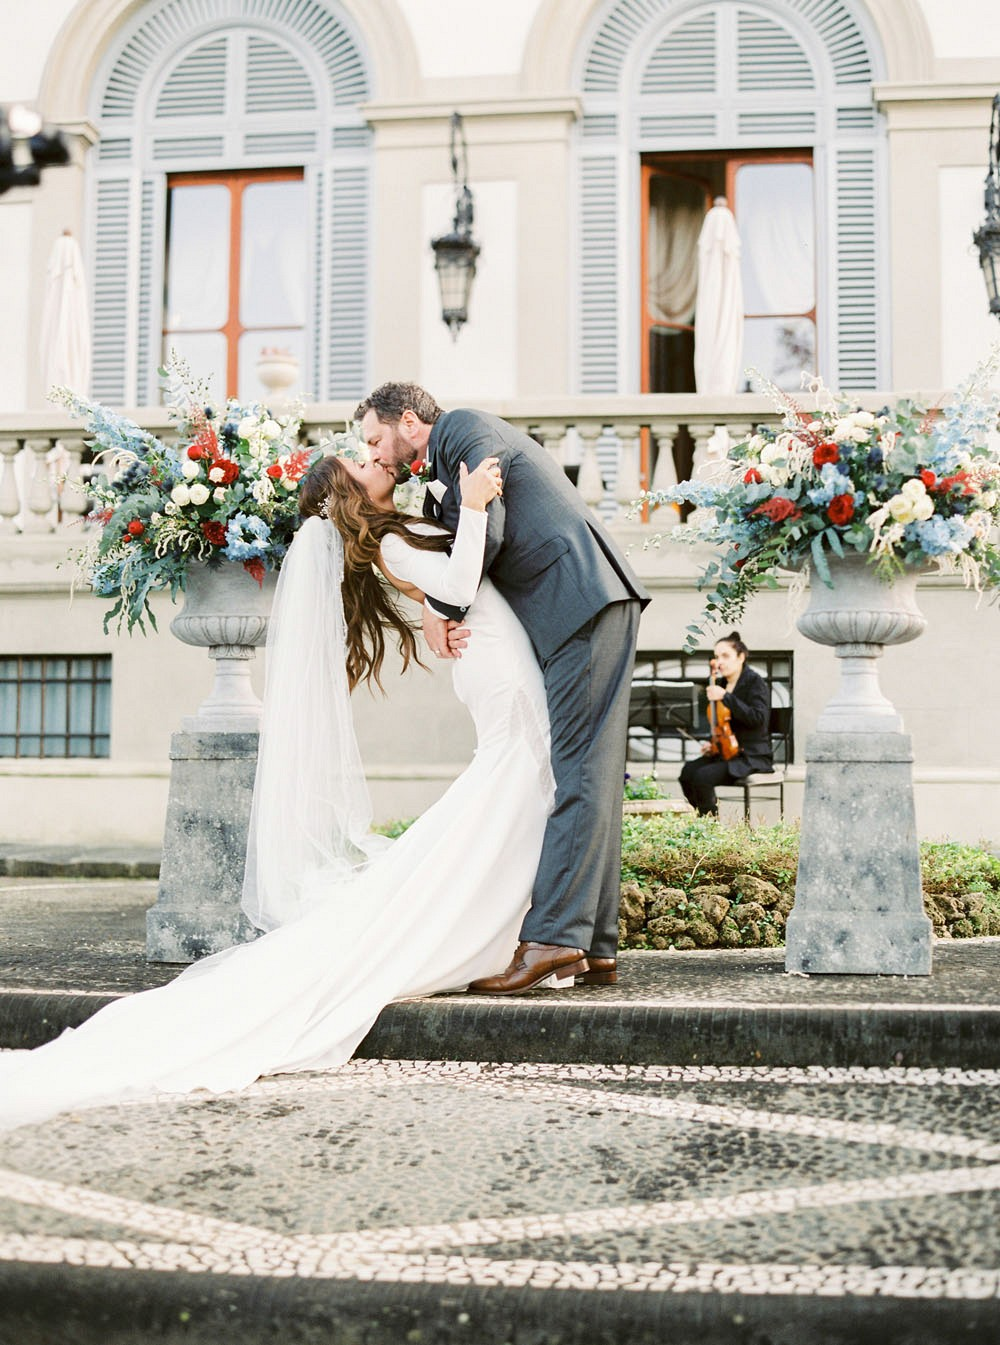 Italian Destination Elopement with Just the Bride & Groom